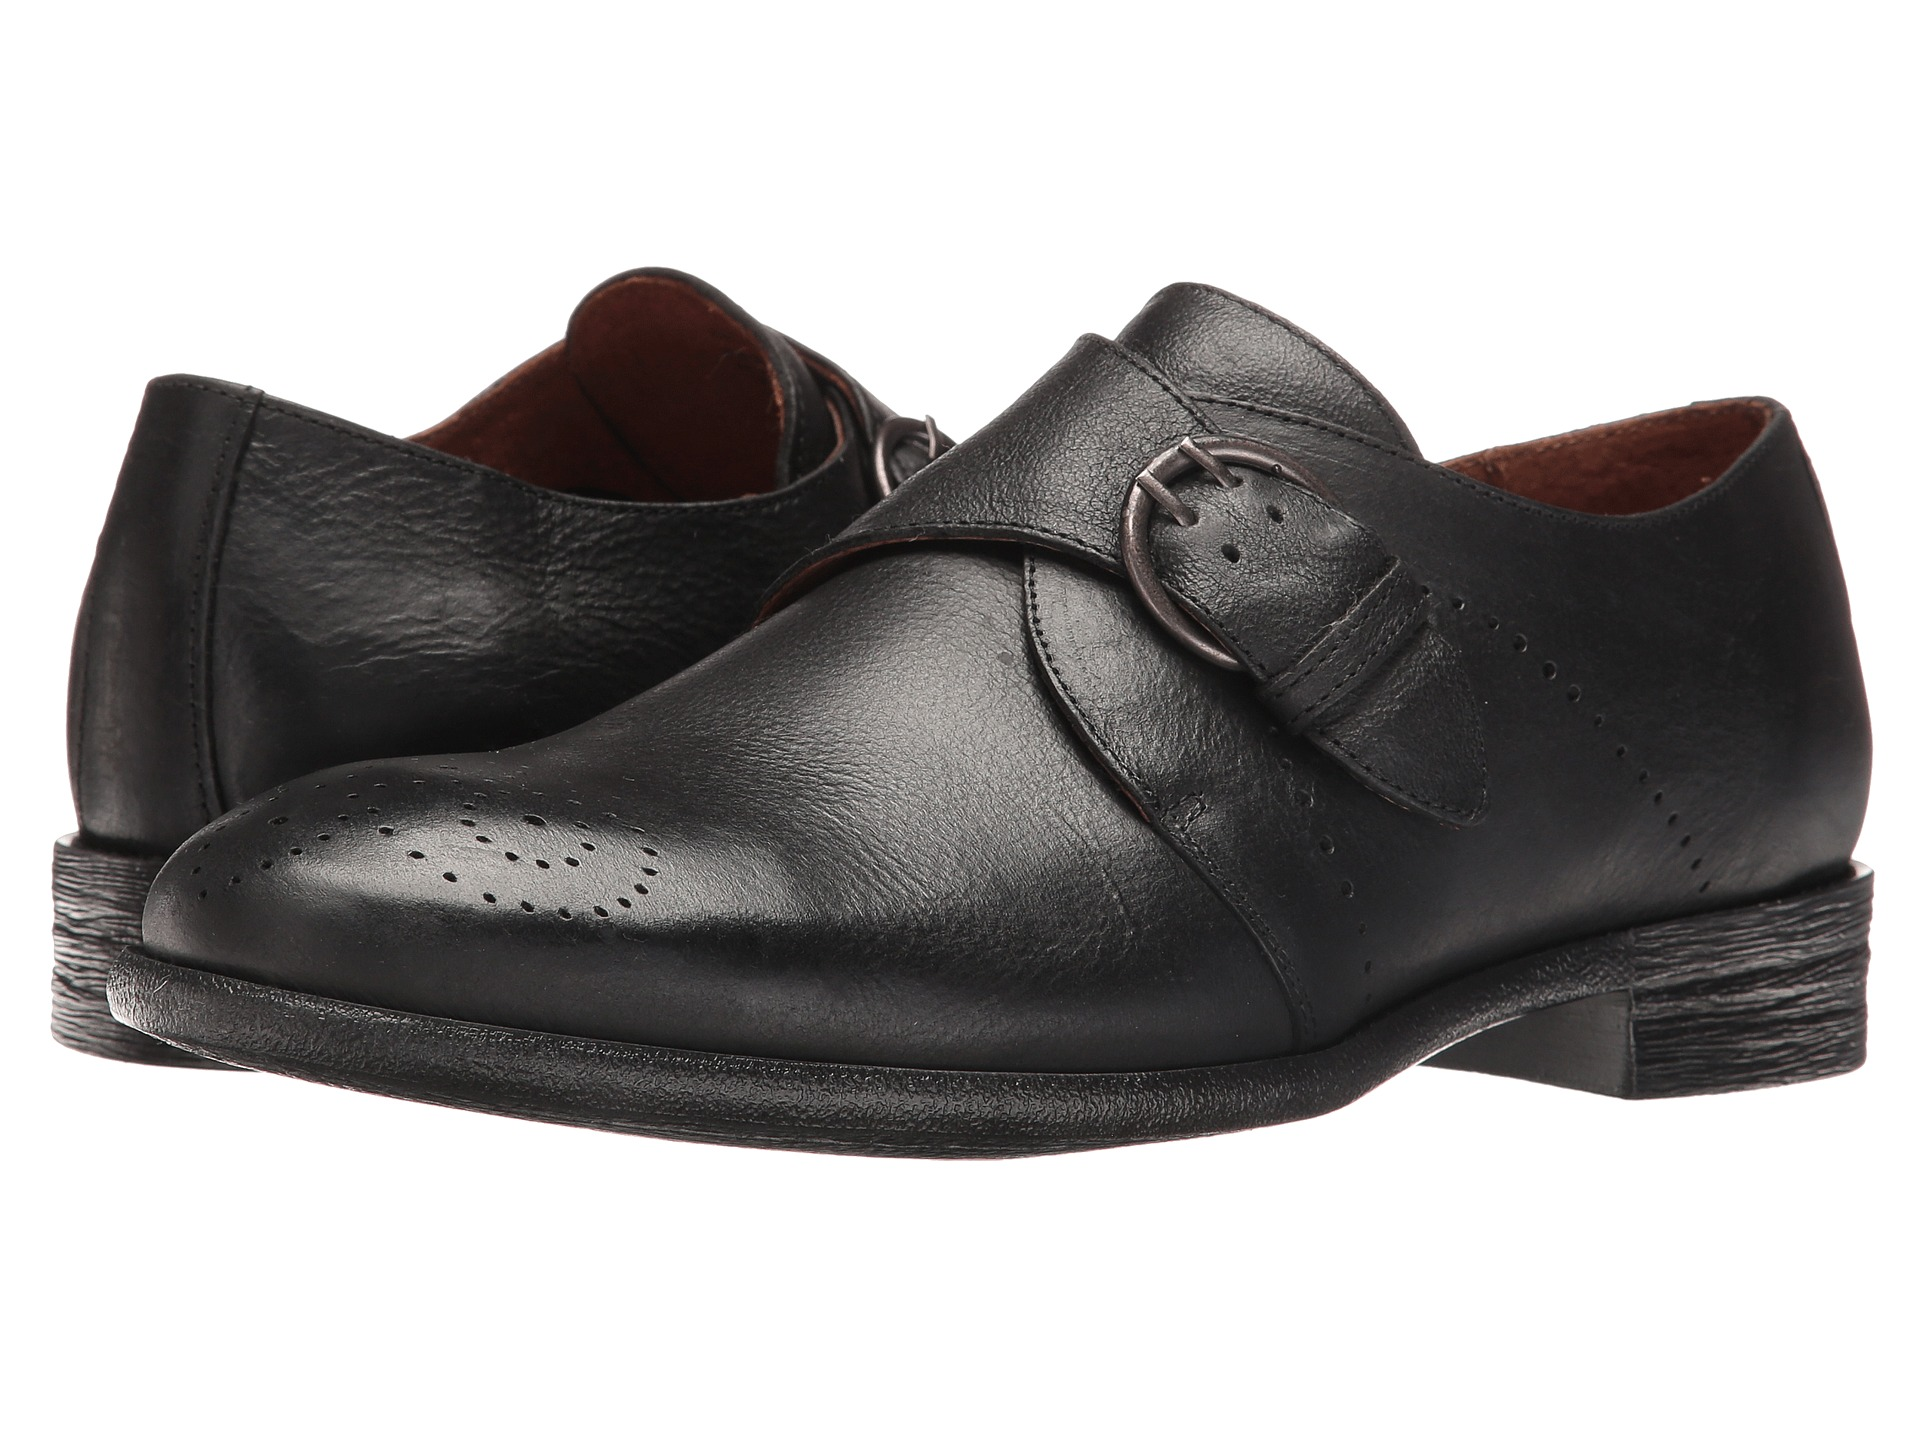 Robert Wayne shoes feature a combination unique fabrication and extraordinary stitching with lightweight soles. Monk straps, classic lace-ups, and slip-on styles round out the Robert Wayne footwear collection. Robert Wayne shoes and boots attract compliments without being too flashy.